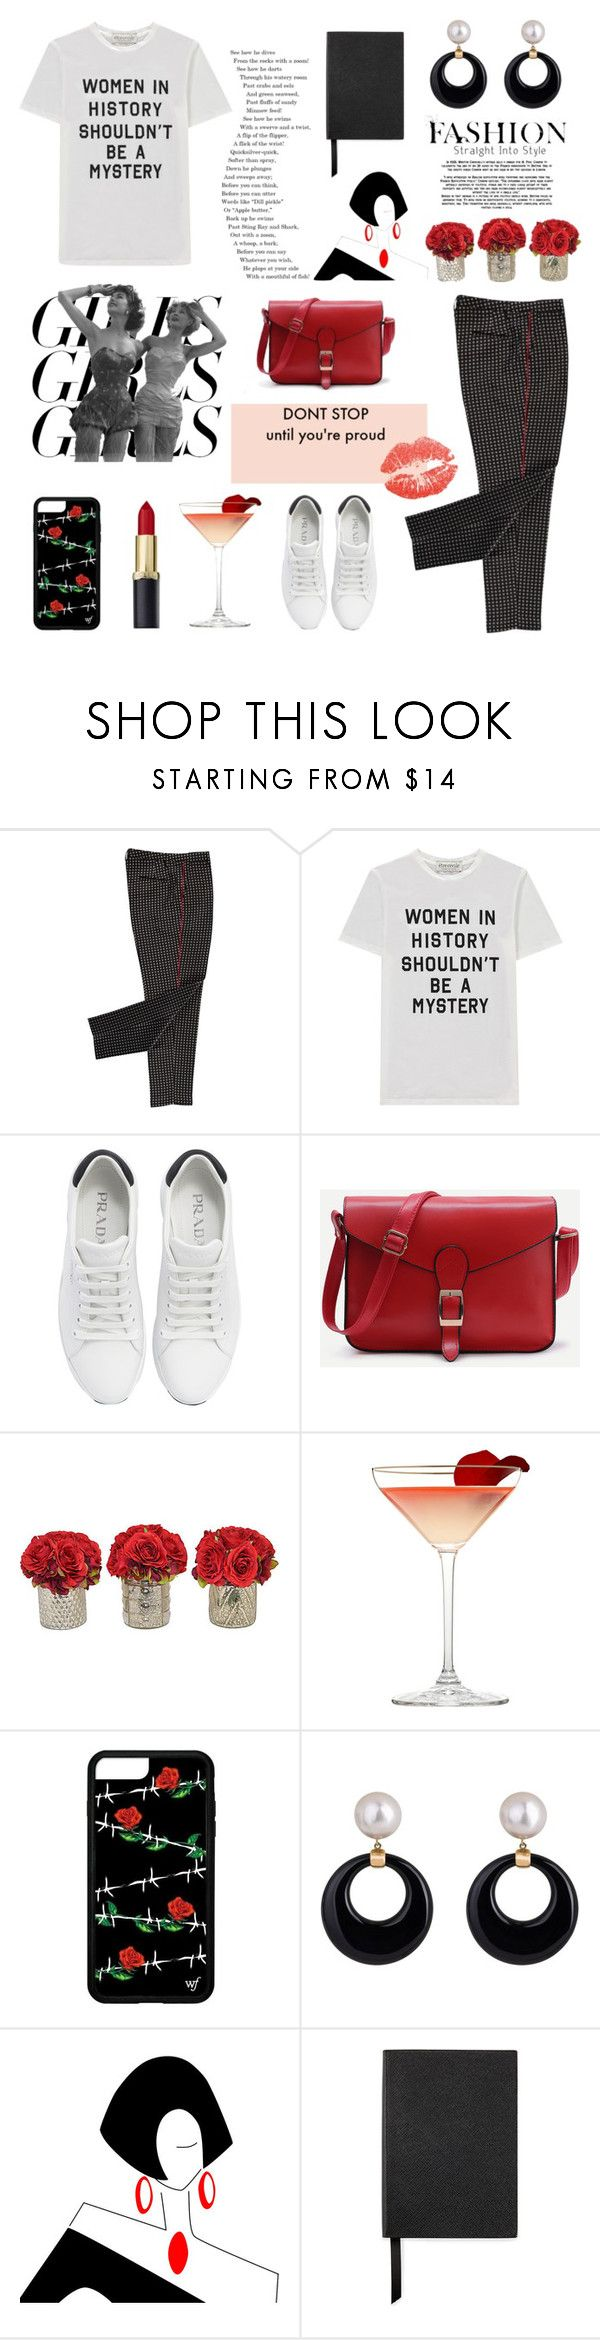 """""""Girl Pride Day Everyday"""" by maryam-96-1 ❤ liked on Polyvore featuring Être Cécile, Prada, The French Bee, Smythson, womensHistoryMonth, pressforprogress and GirlPride"""